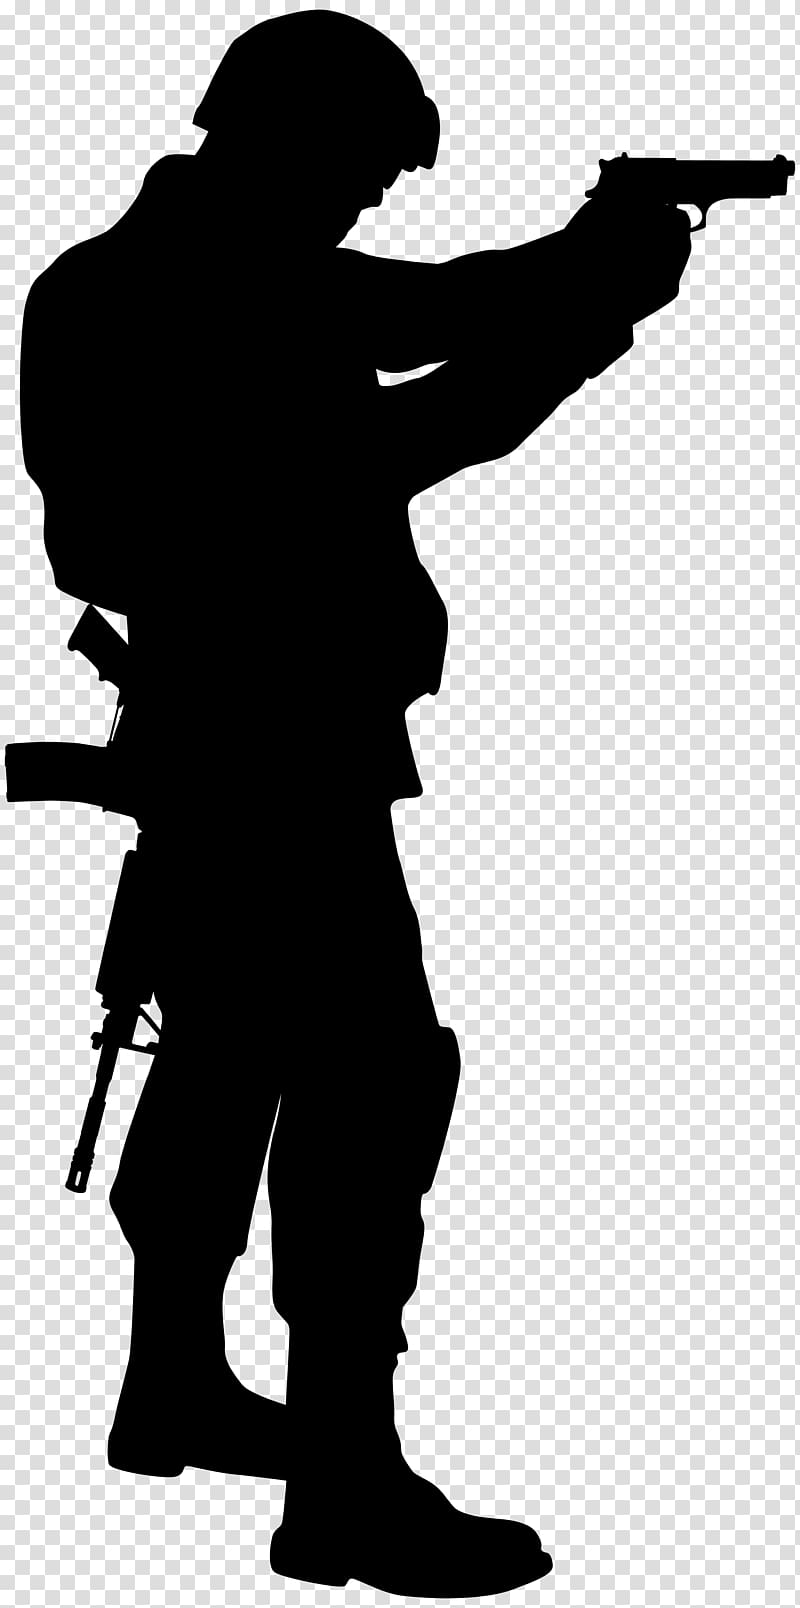 Soldier Silhouette , Soldier Silhouette transparent.